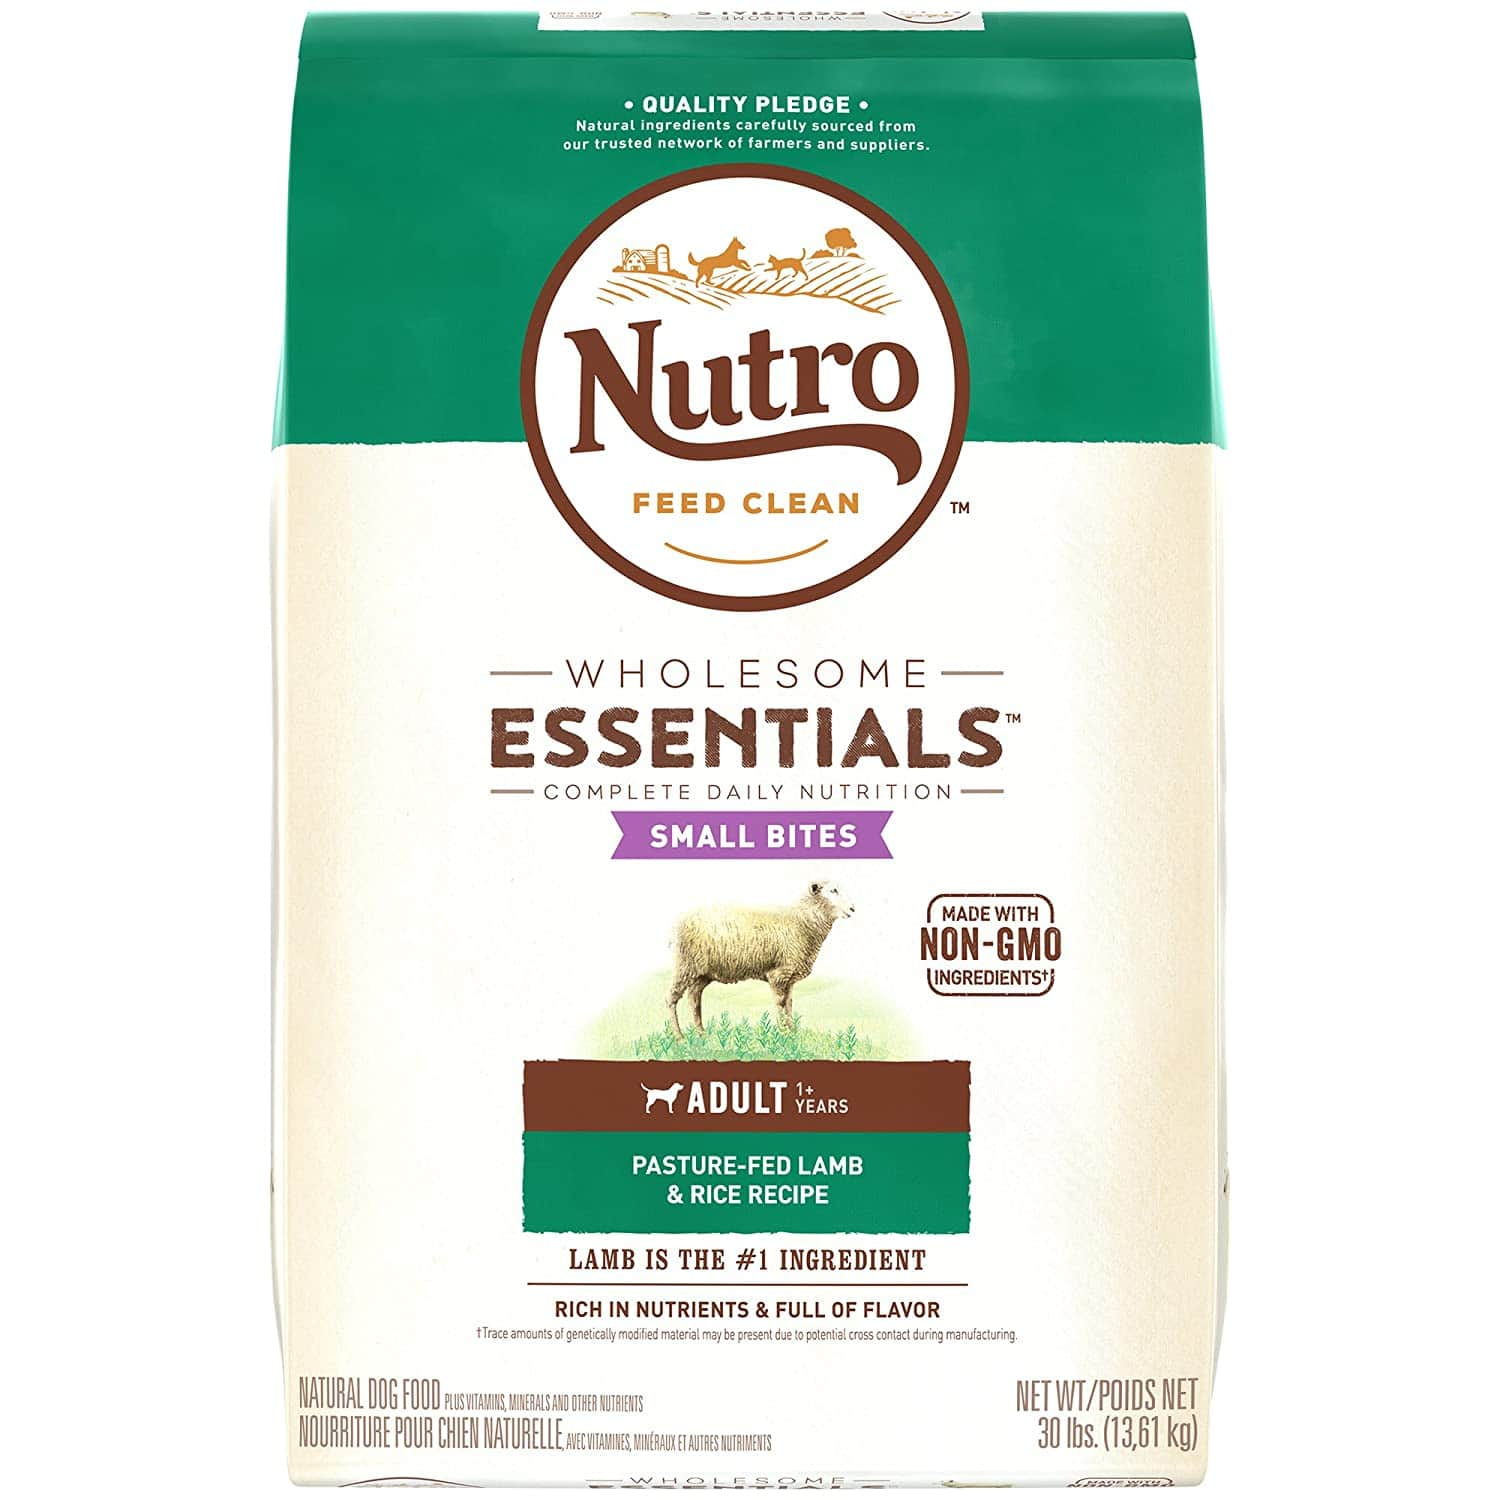 Nutro Wholesome Essentials Small Bites Adult Lamb & Rice Dry Dog Food 30lbs $33.95 with s/s